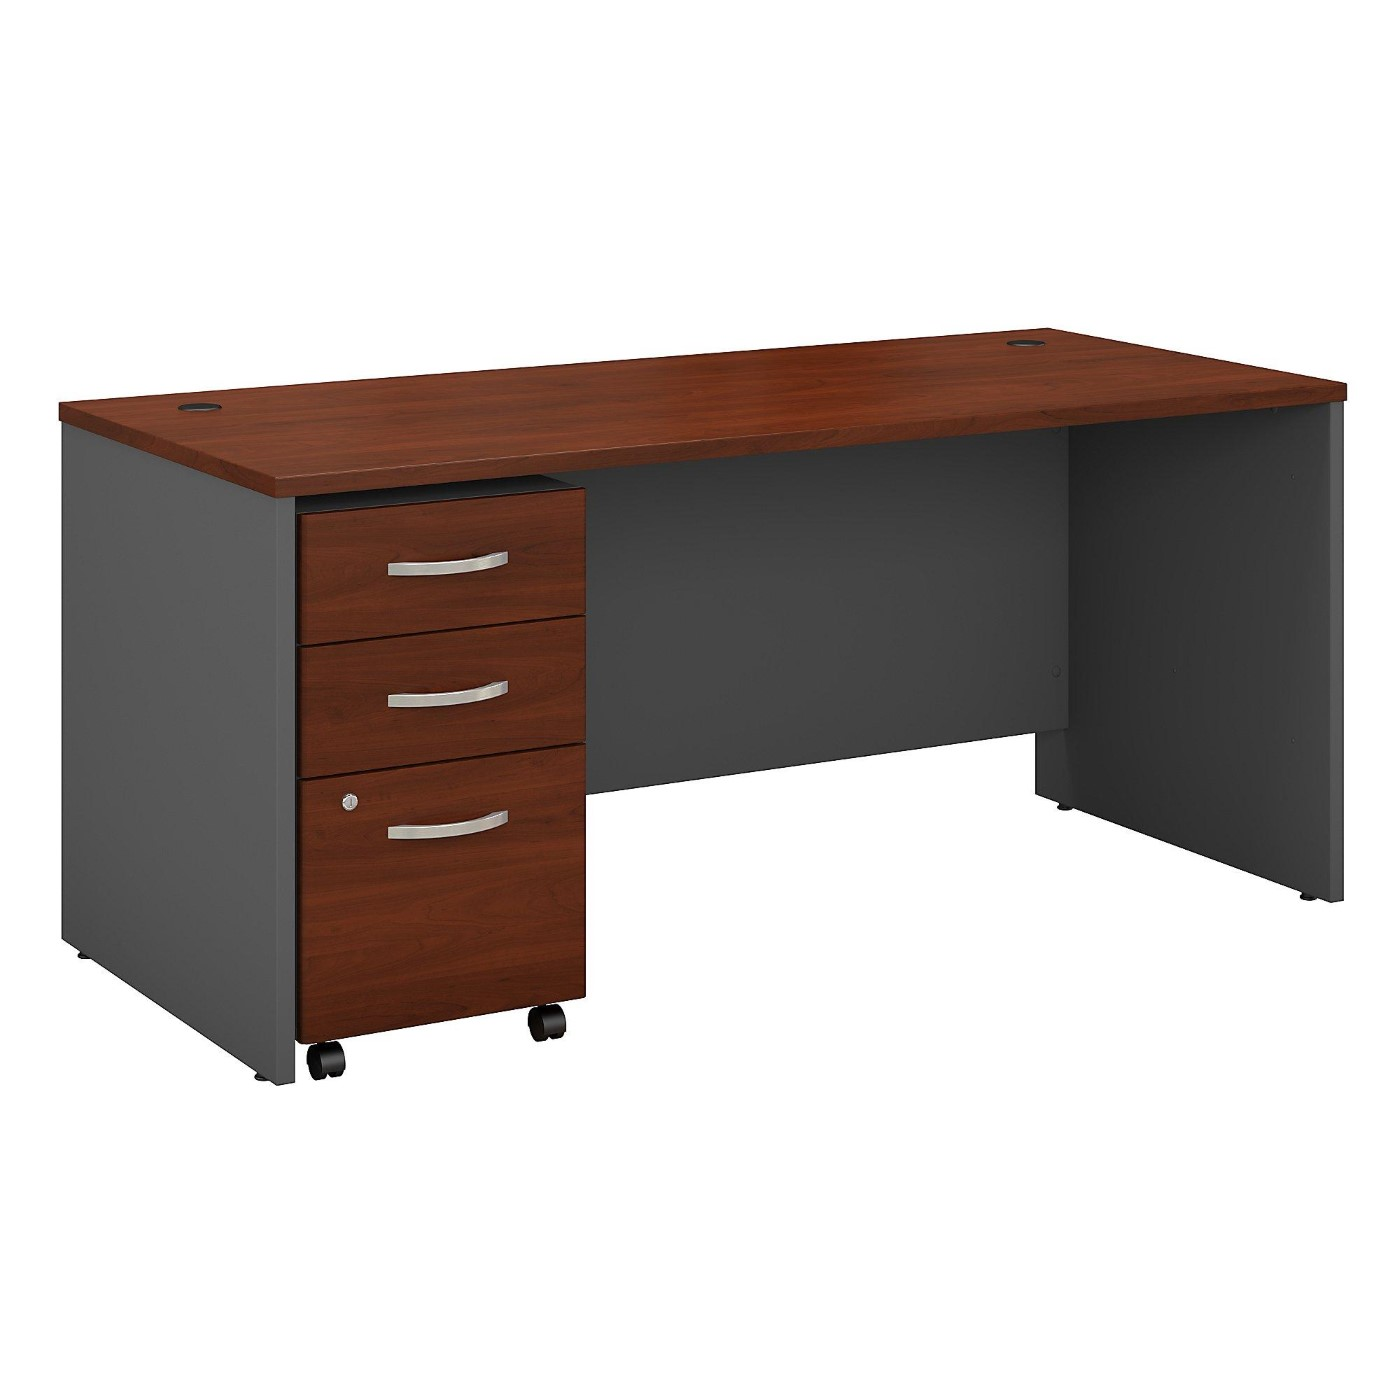 BUSH BUSINESS FURNITURE SERIES C 66W X 30D OFFICE DESK WITH MOBILE FILE CABINET. FREE SHIPPING</font></b></font>&#x1F384<font color=red><b>ERGONOMICHOME HOLIDAY SALE - ENDS DEC. 17, 2019</b></font>&#x1F384